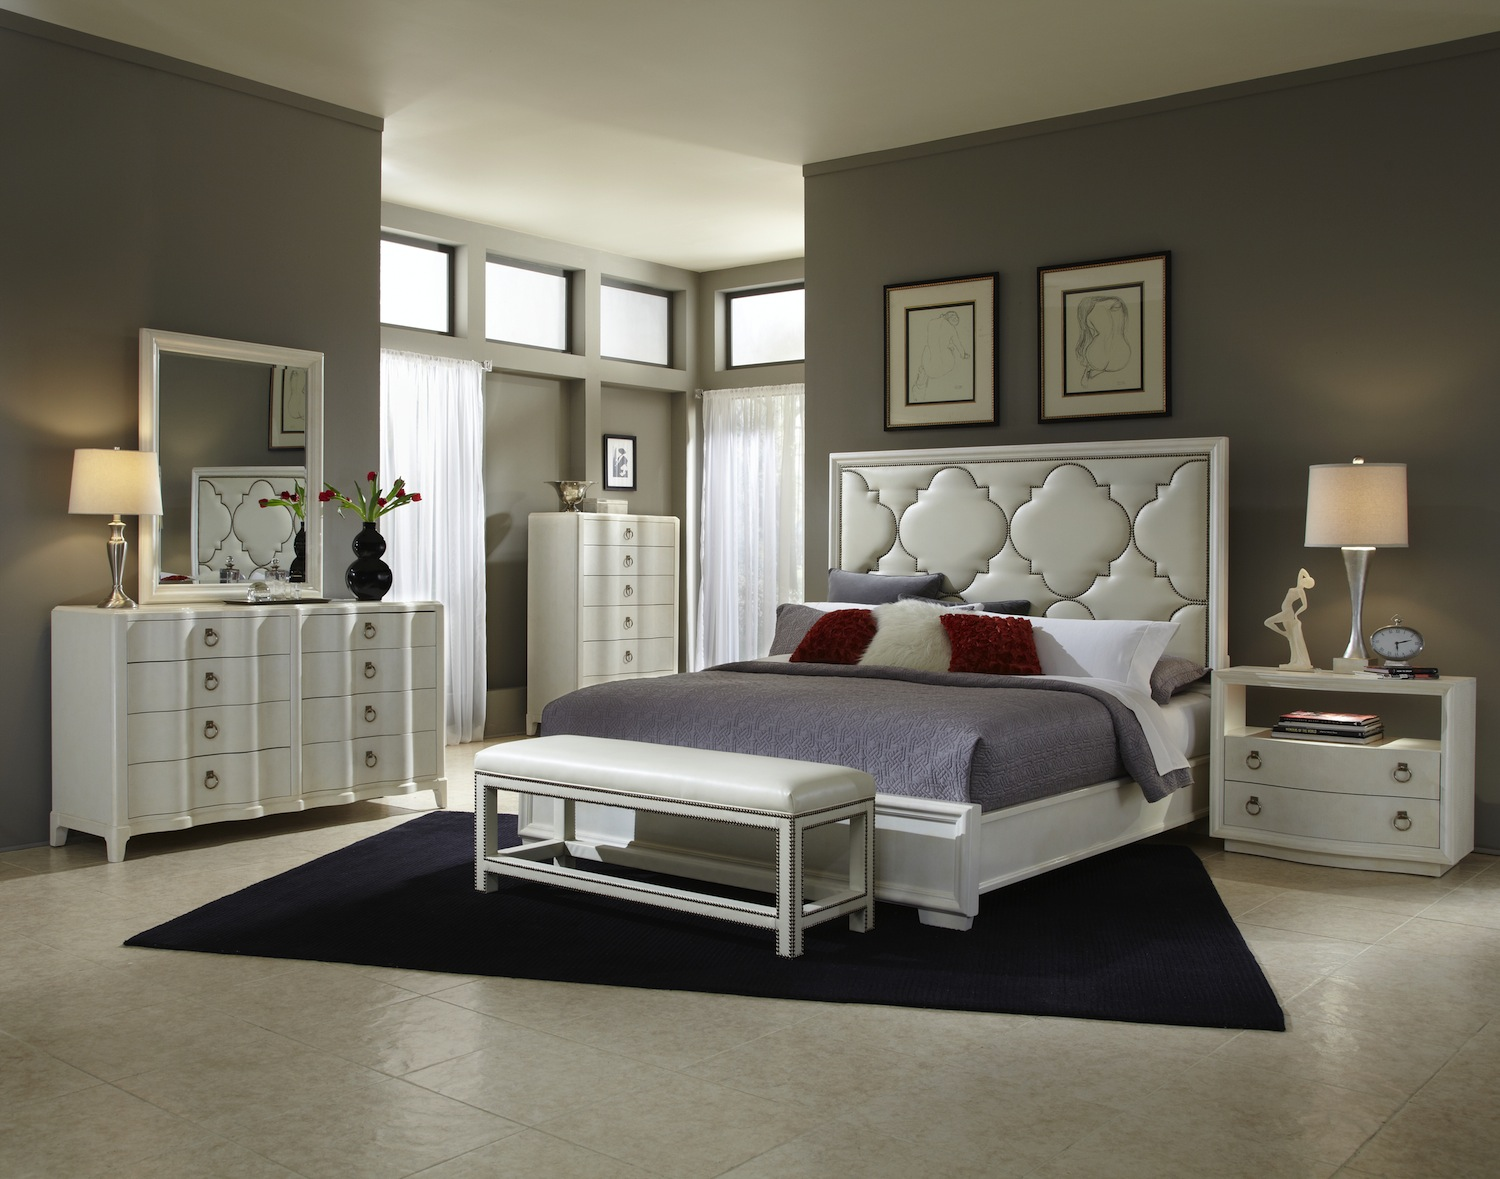 cosmopolitan parchment hollywood glamour bedroom set 208000. Black Bedroom Furniture Sets. Home Design Ideas